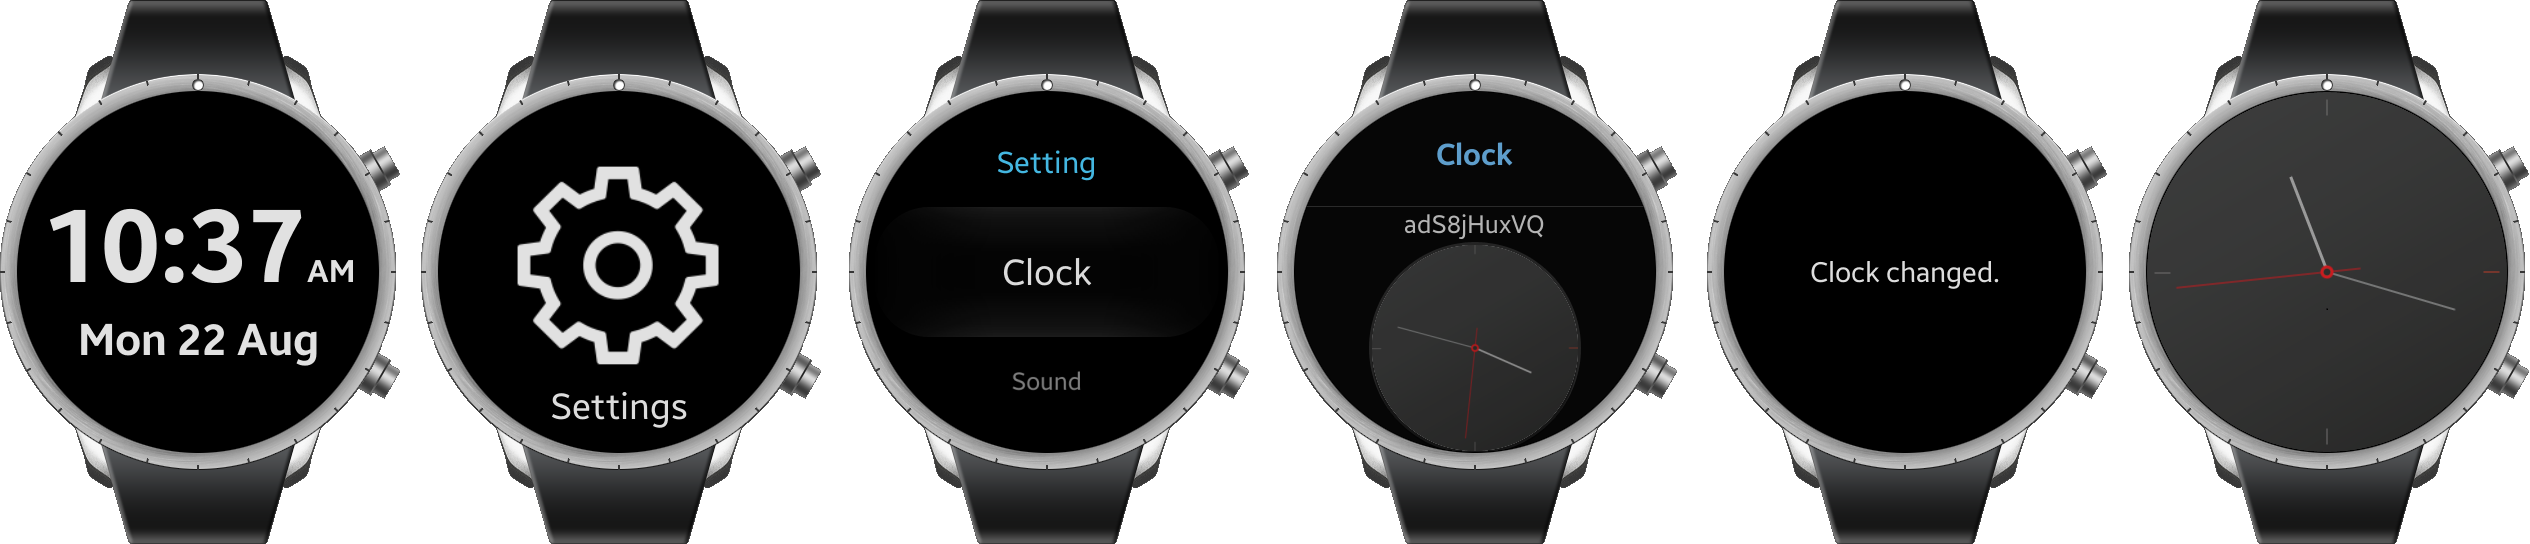 how to change watch face